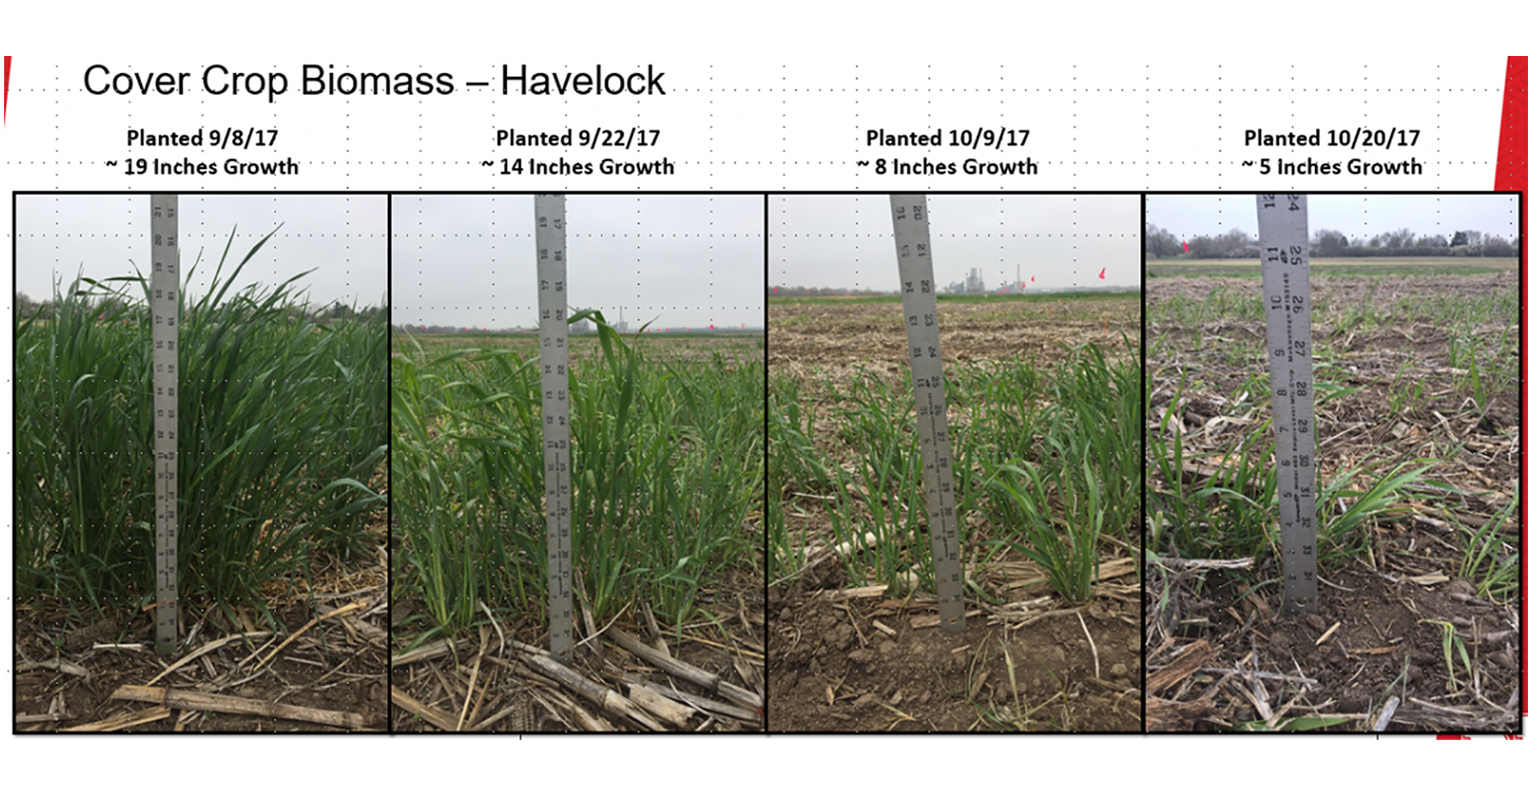 Cover crop biomass for four planting dates in the 2017-2018 trials.